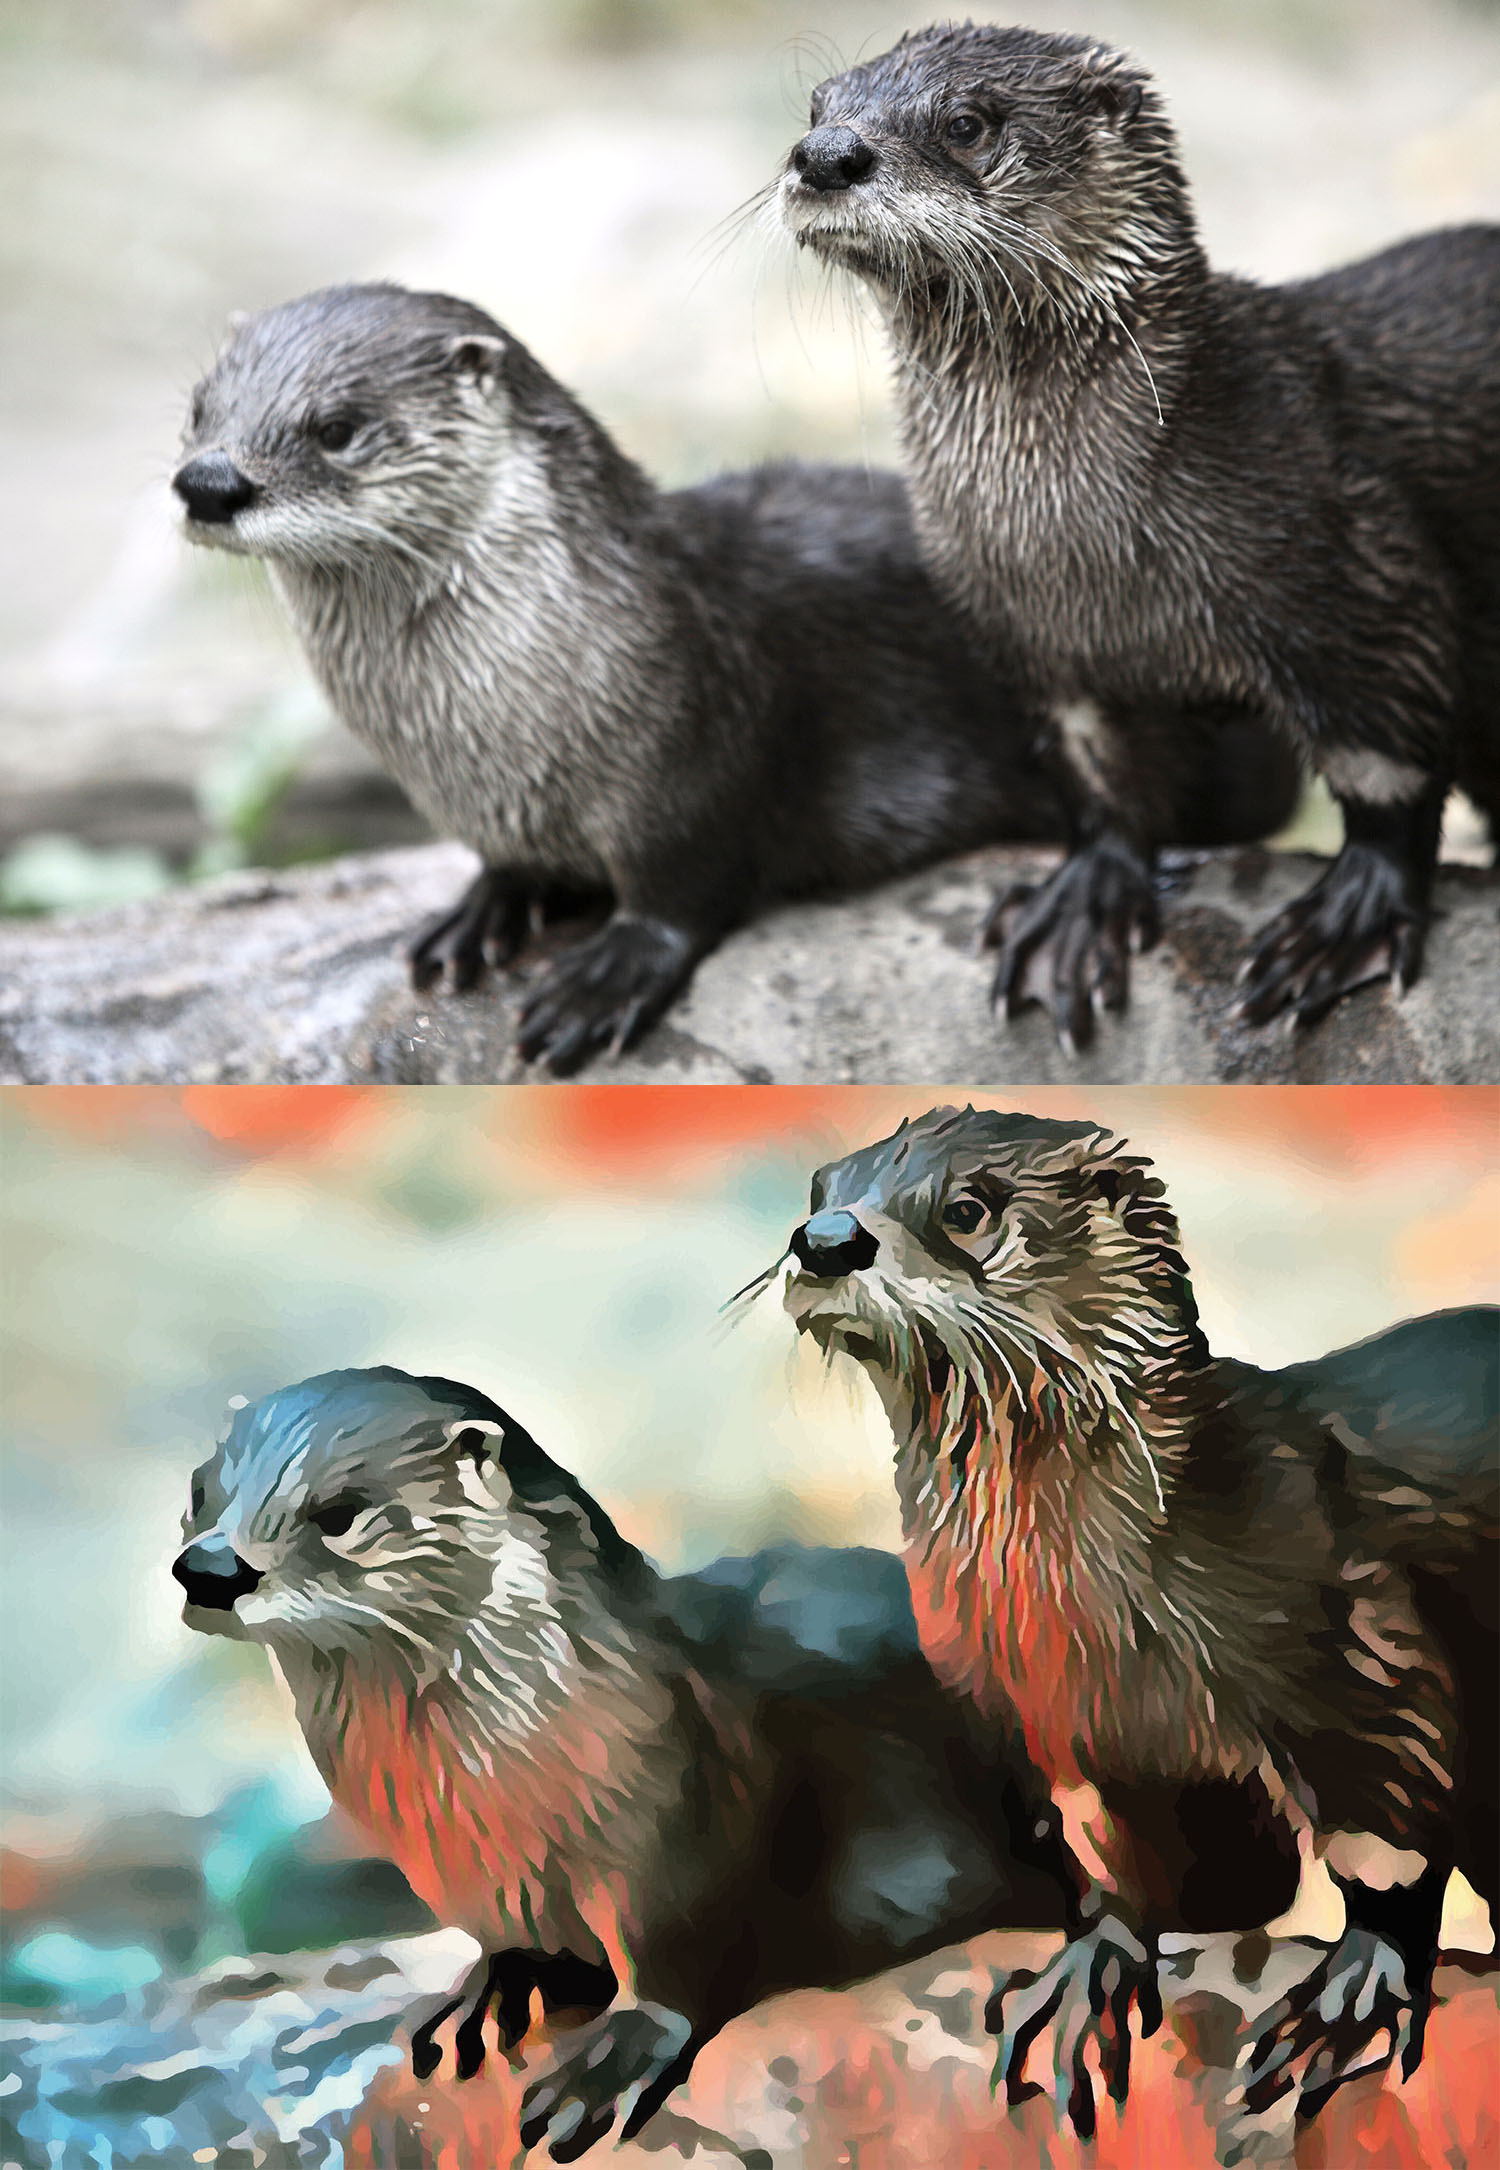 Before and after stylized image of two wet otters standing on a rock